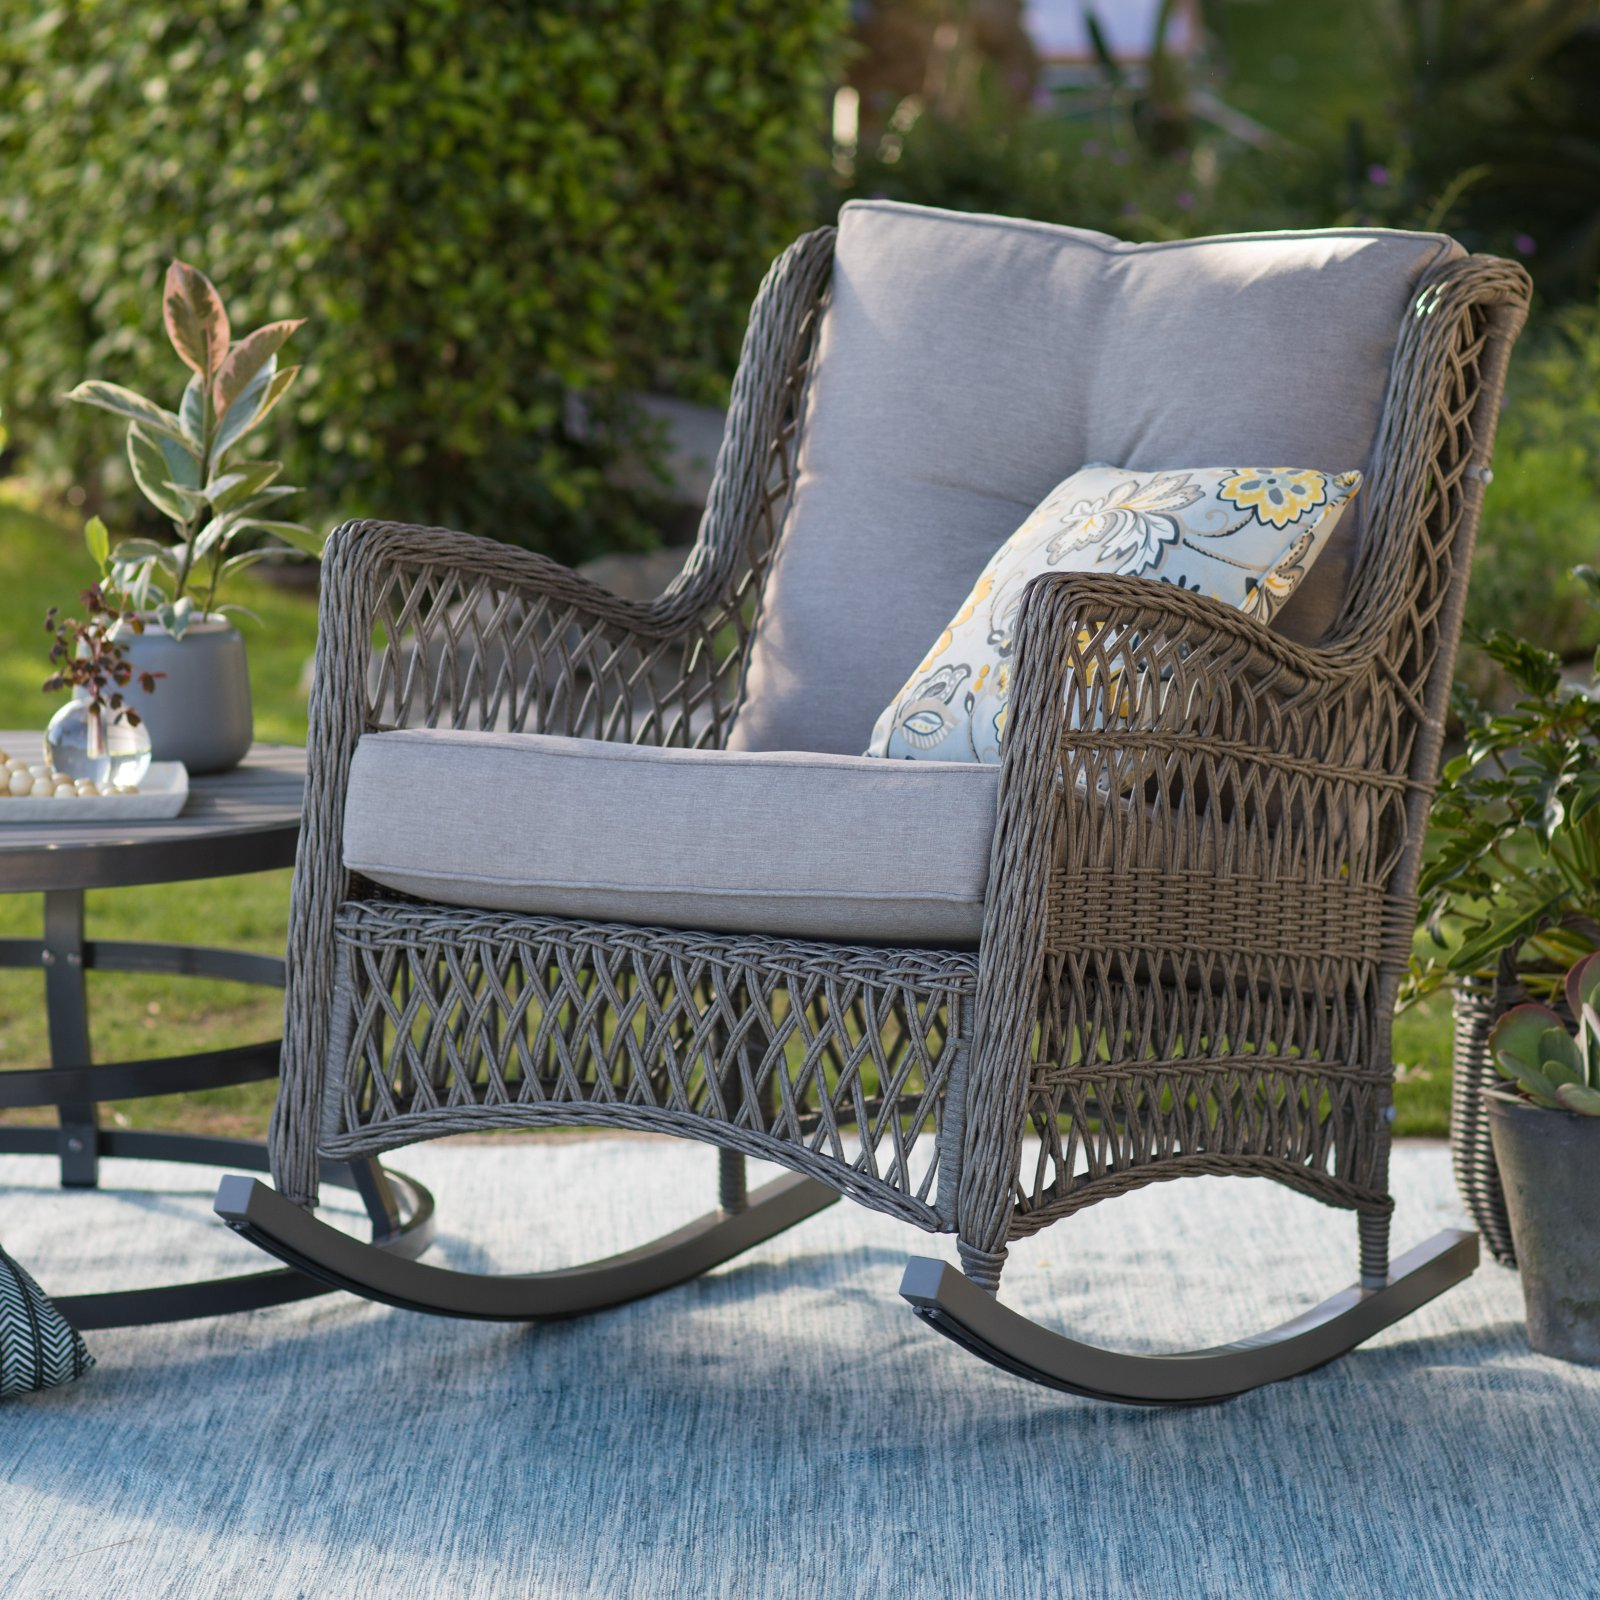 Belham Living Bristol Outdoor Rocking Chair with Cushions